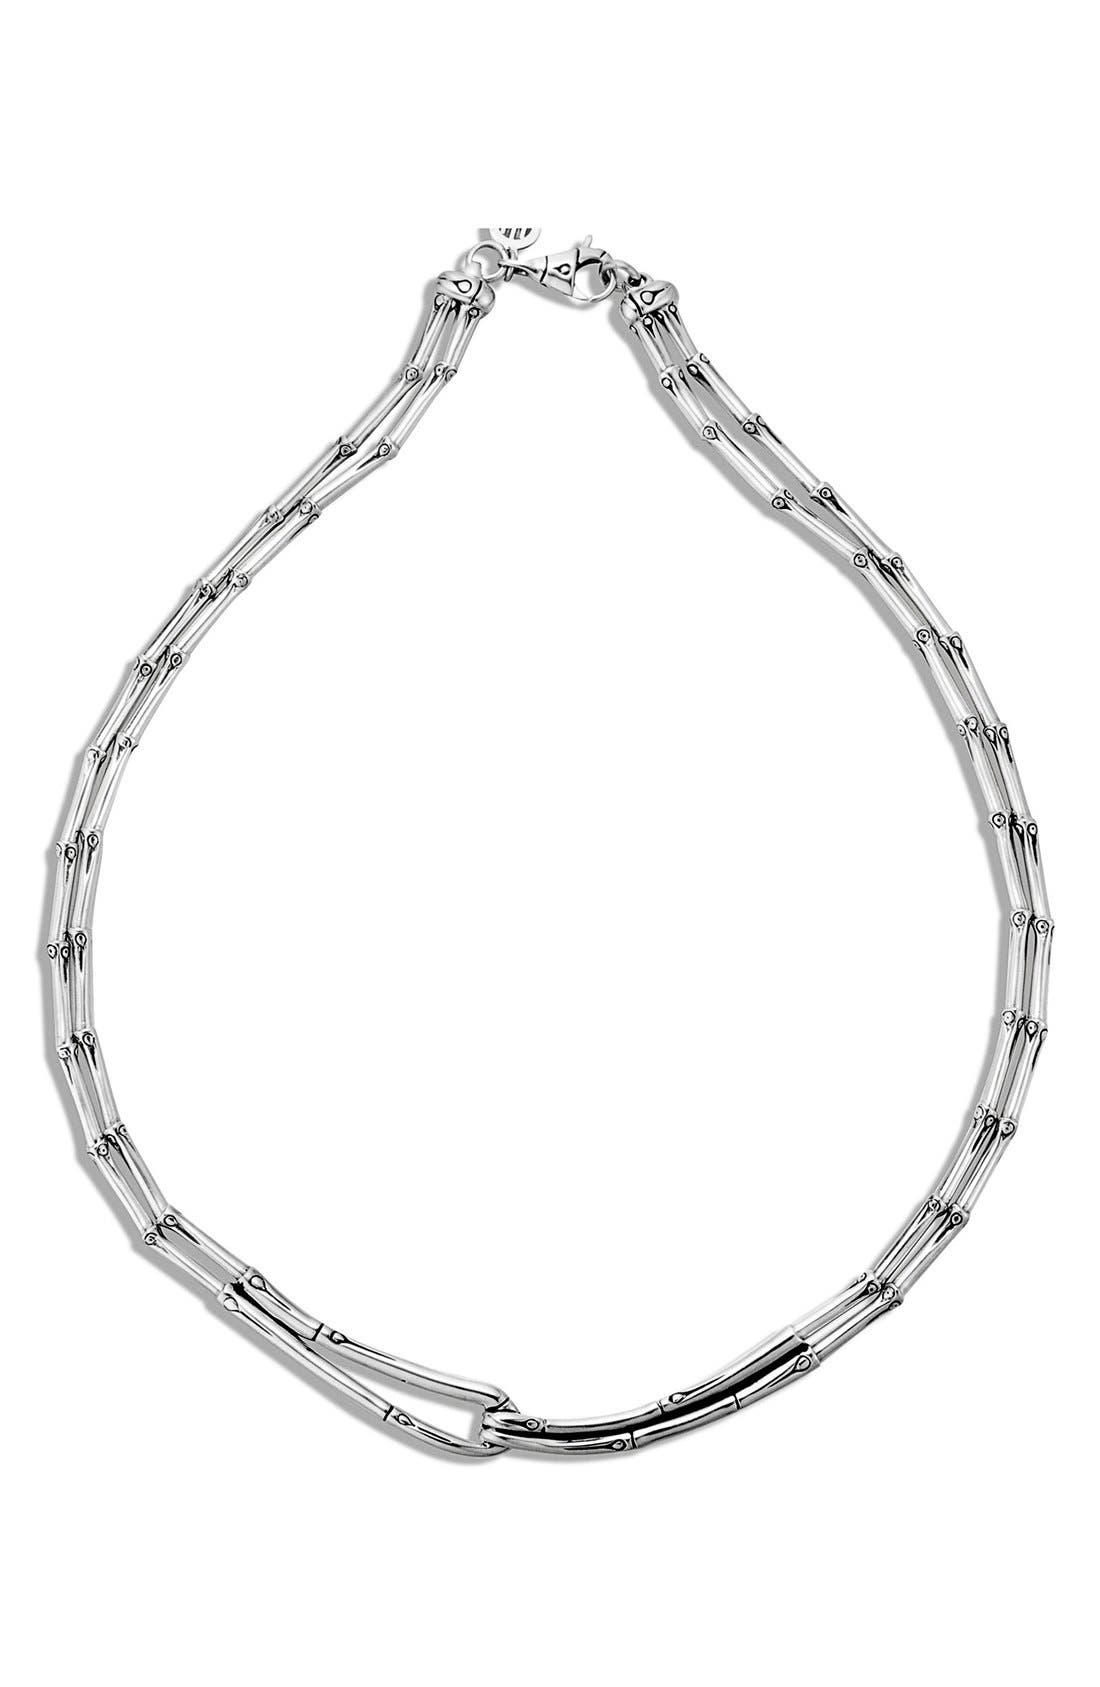 John Hardy 'Bamboo' Necklace